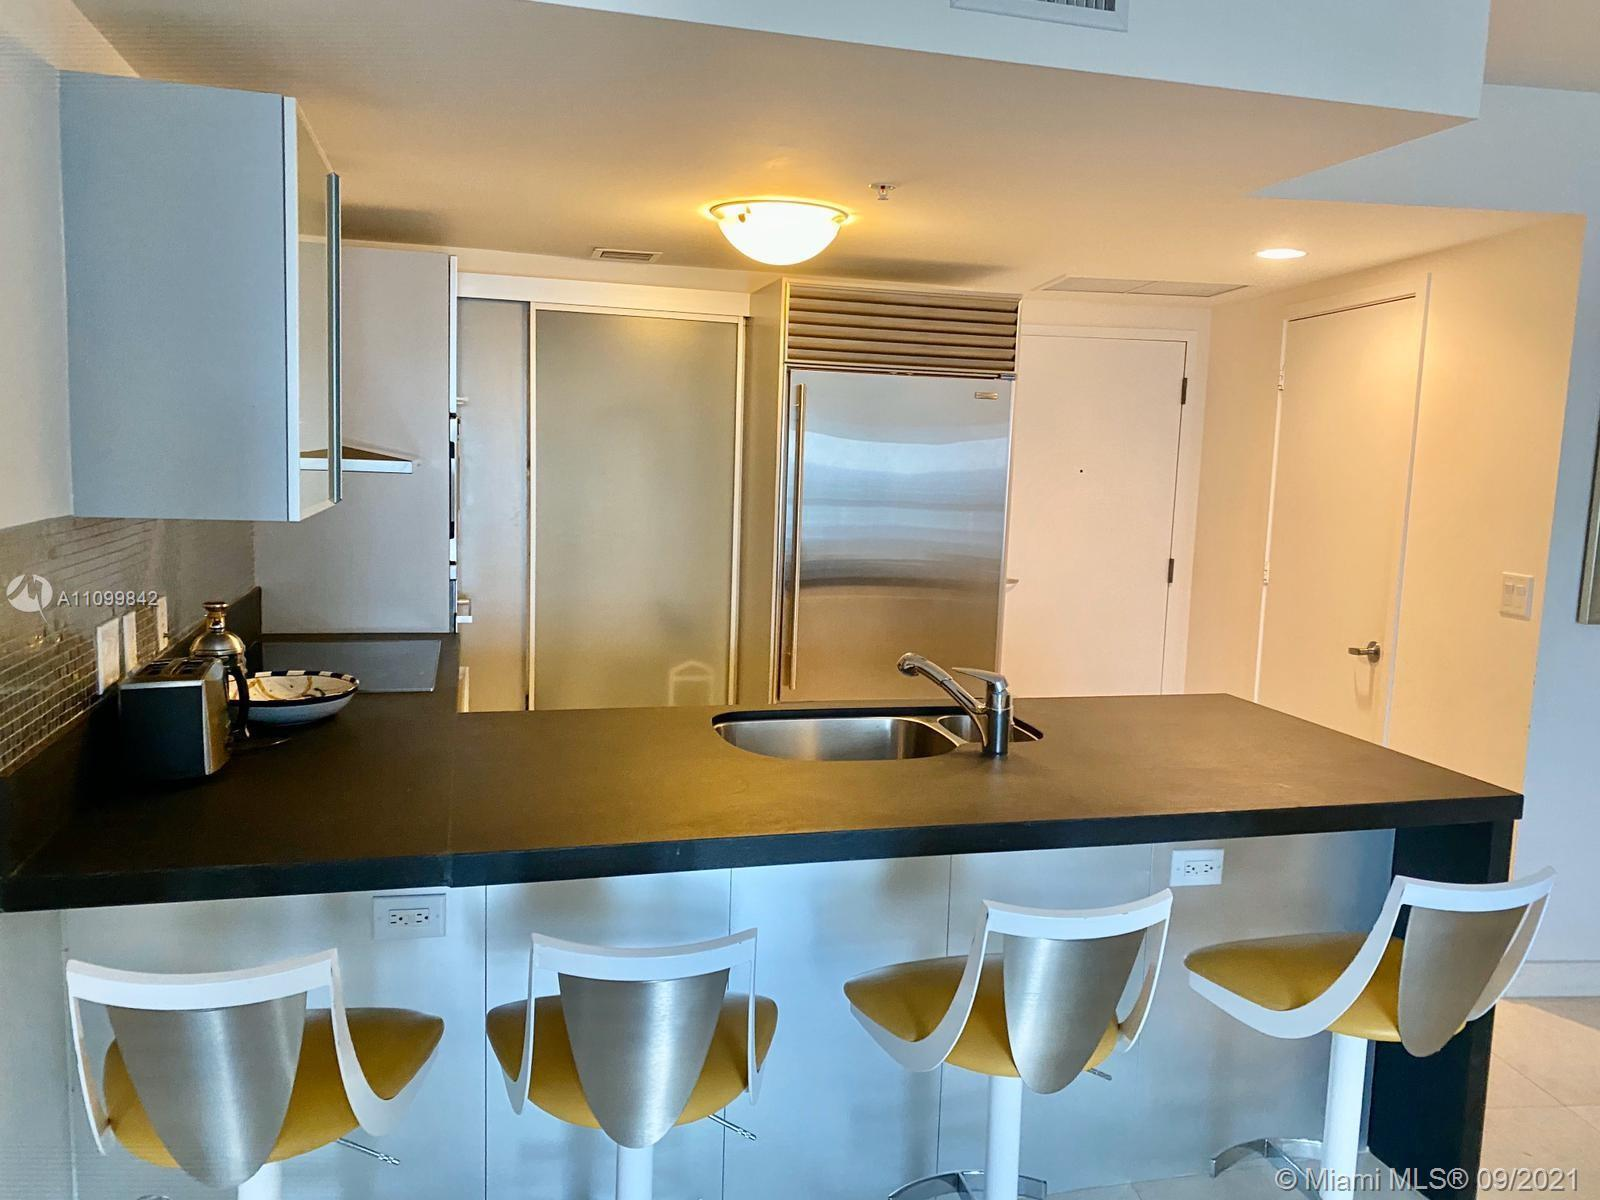 BEAUTIFUL FULLY FURNISHED PENTHOUSE UNIT. MARBLE FLOORS THROUGHOUT, OCEAN AND CITY VIEWS. LIVING ARE